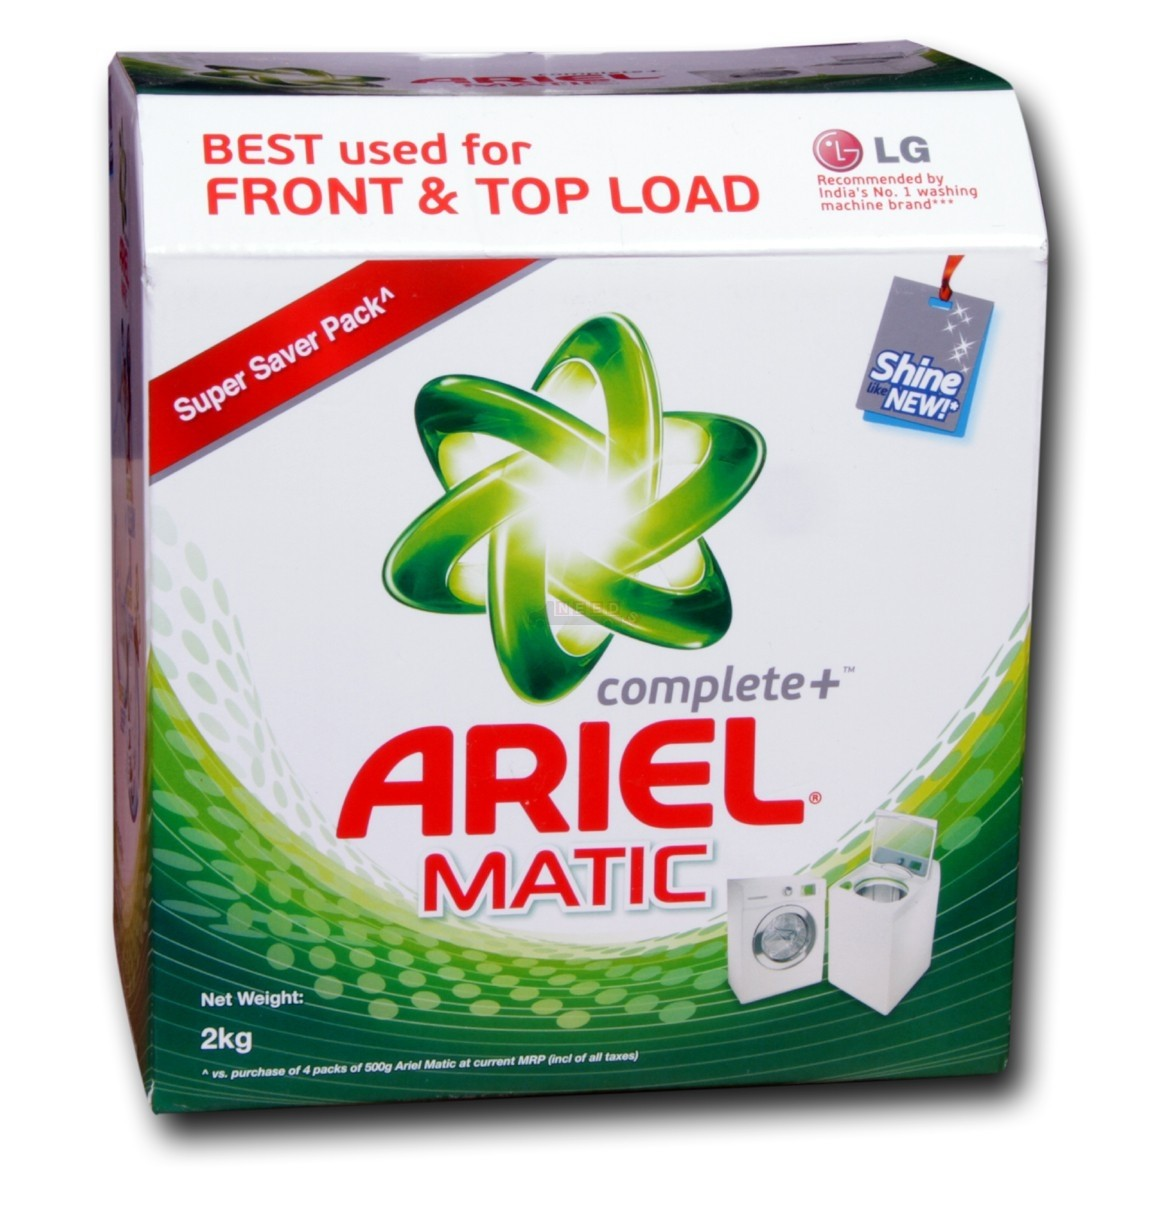 ARIEL MATIC DETERGENT POWDER Reviews, ARIEL MATIC DETERGENT